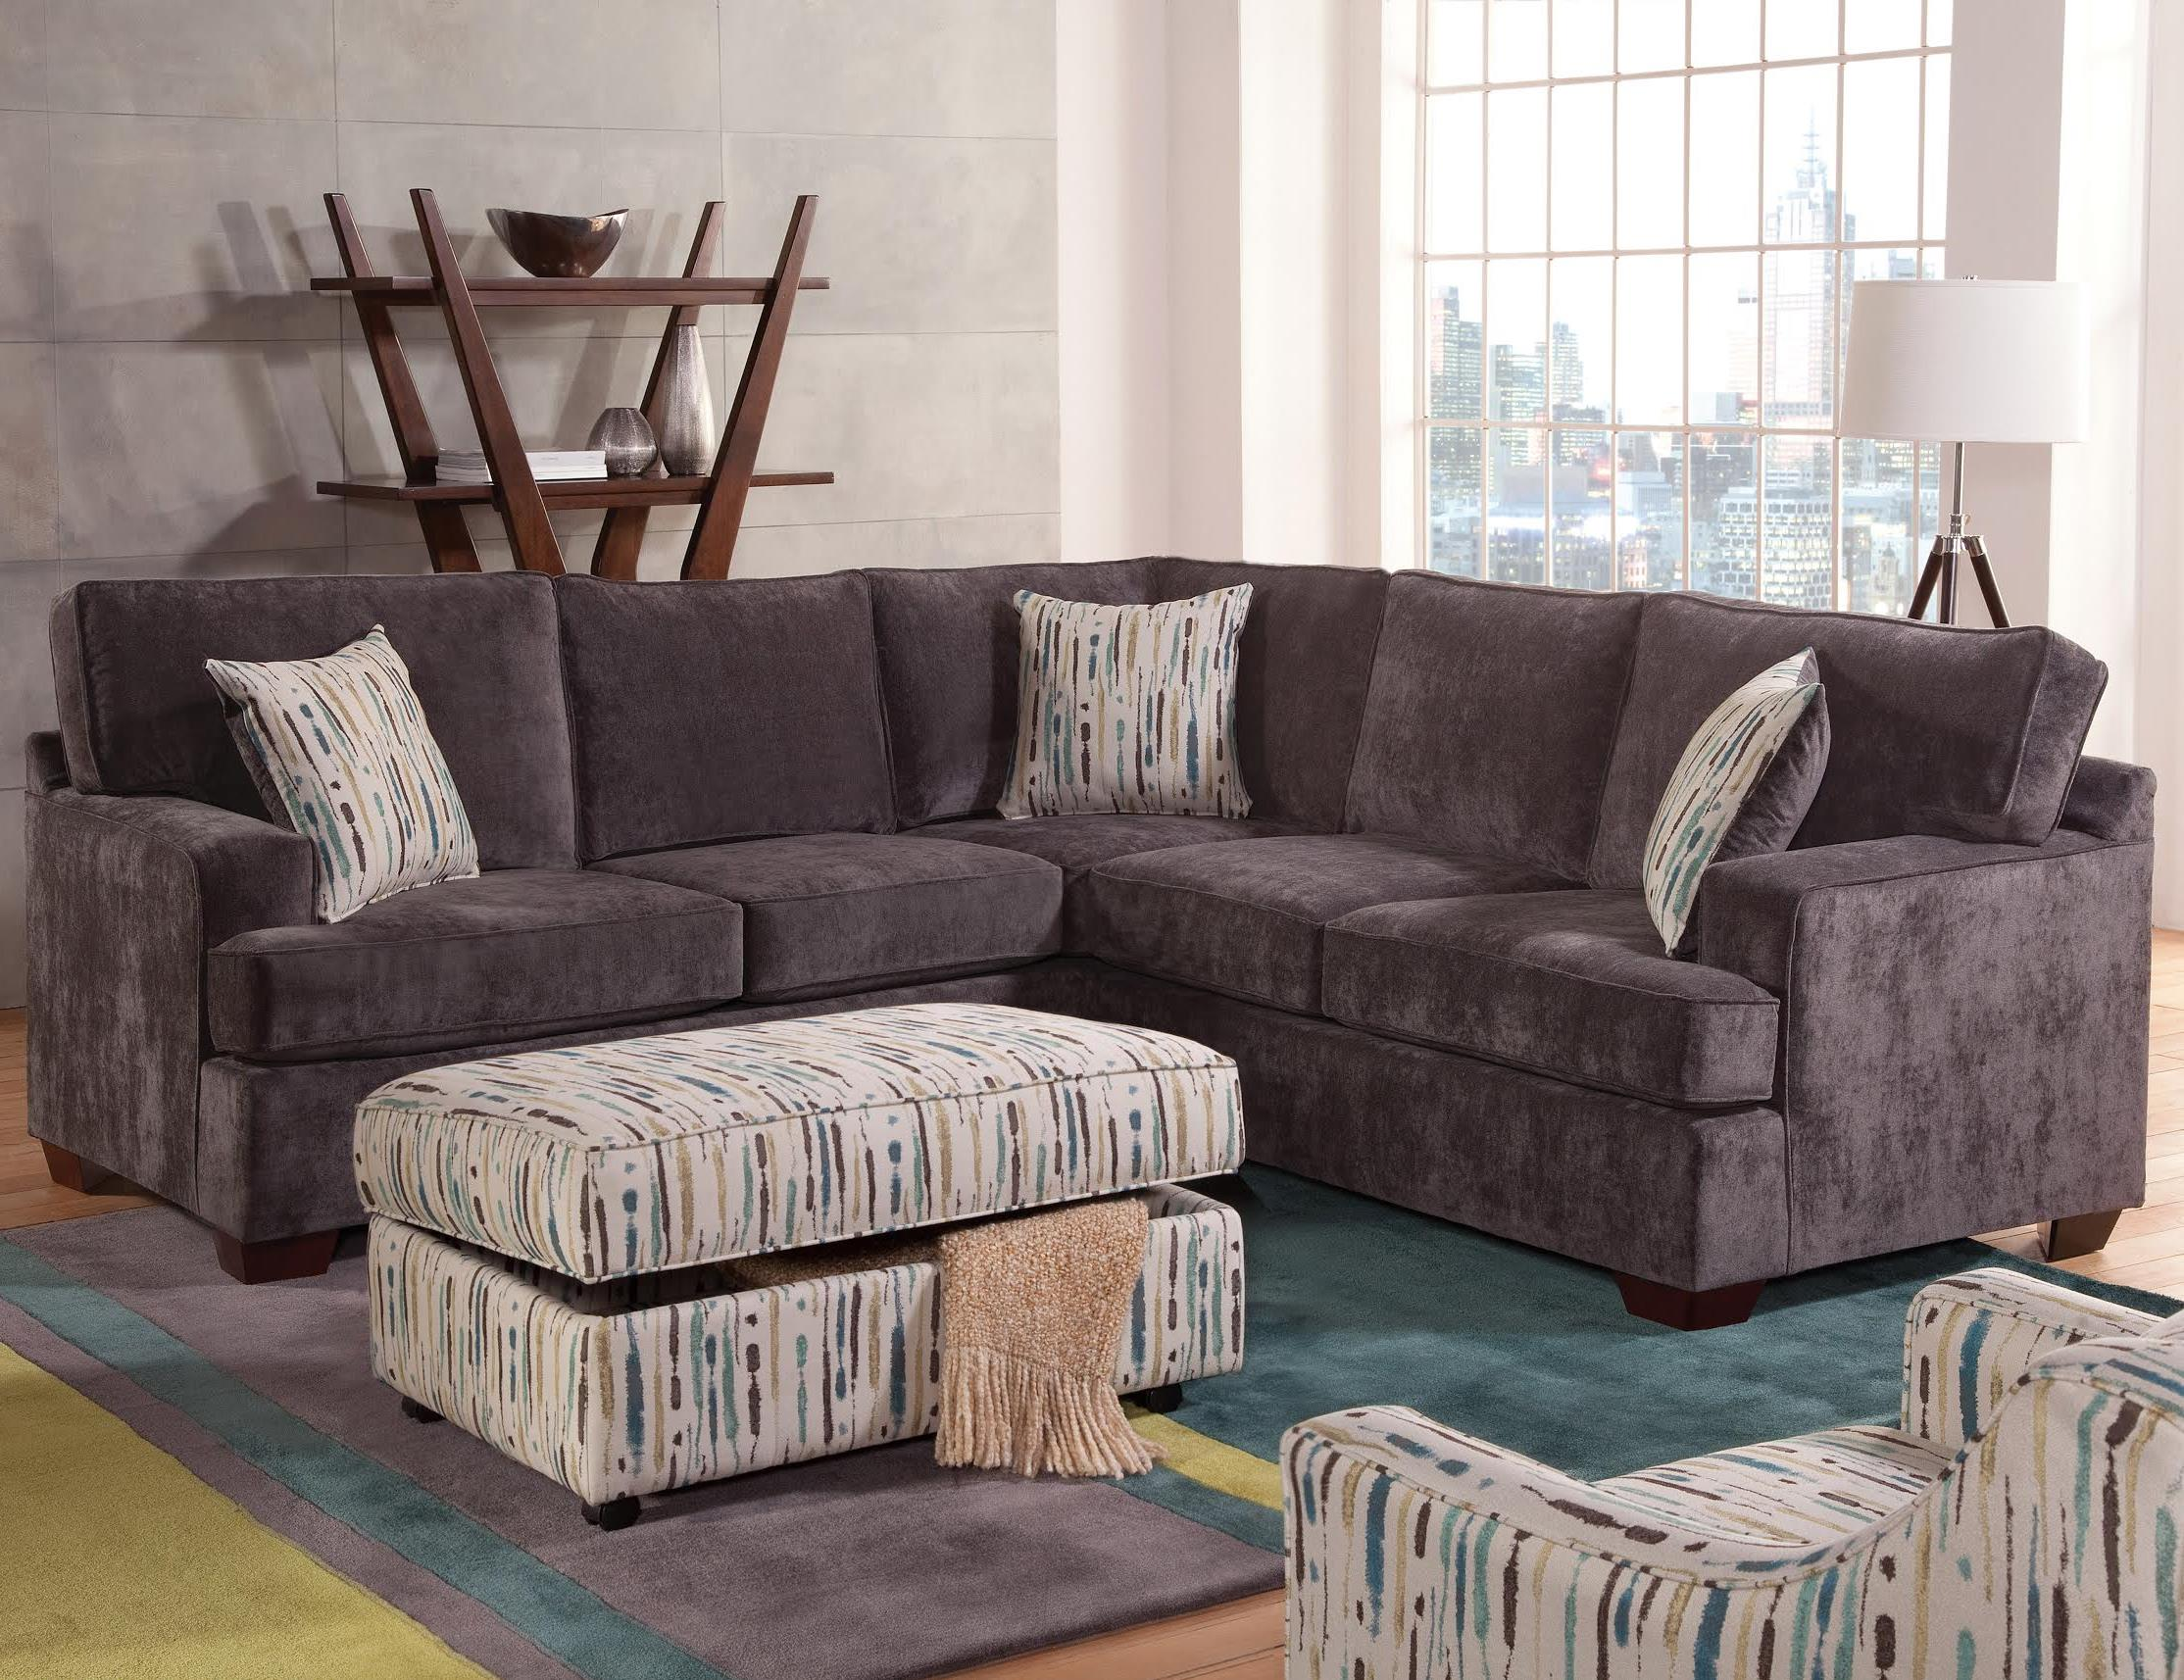 Belfort Essentials Rosslyn Casual Sectional Sofa Belfort